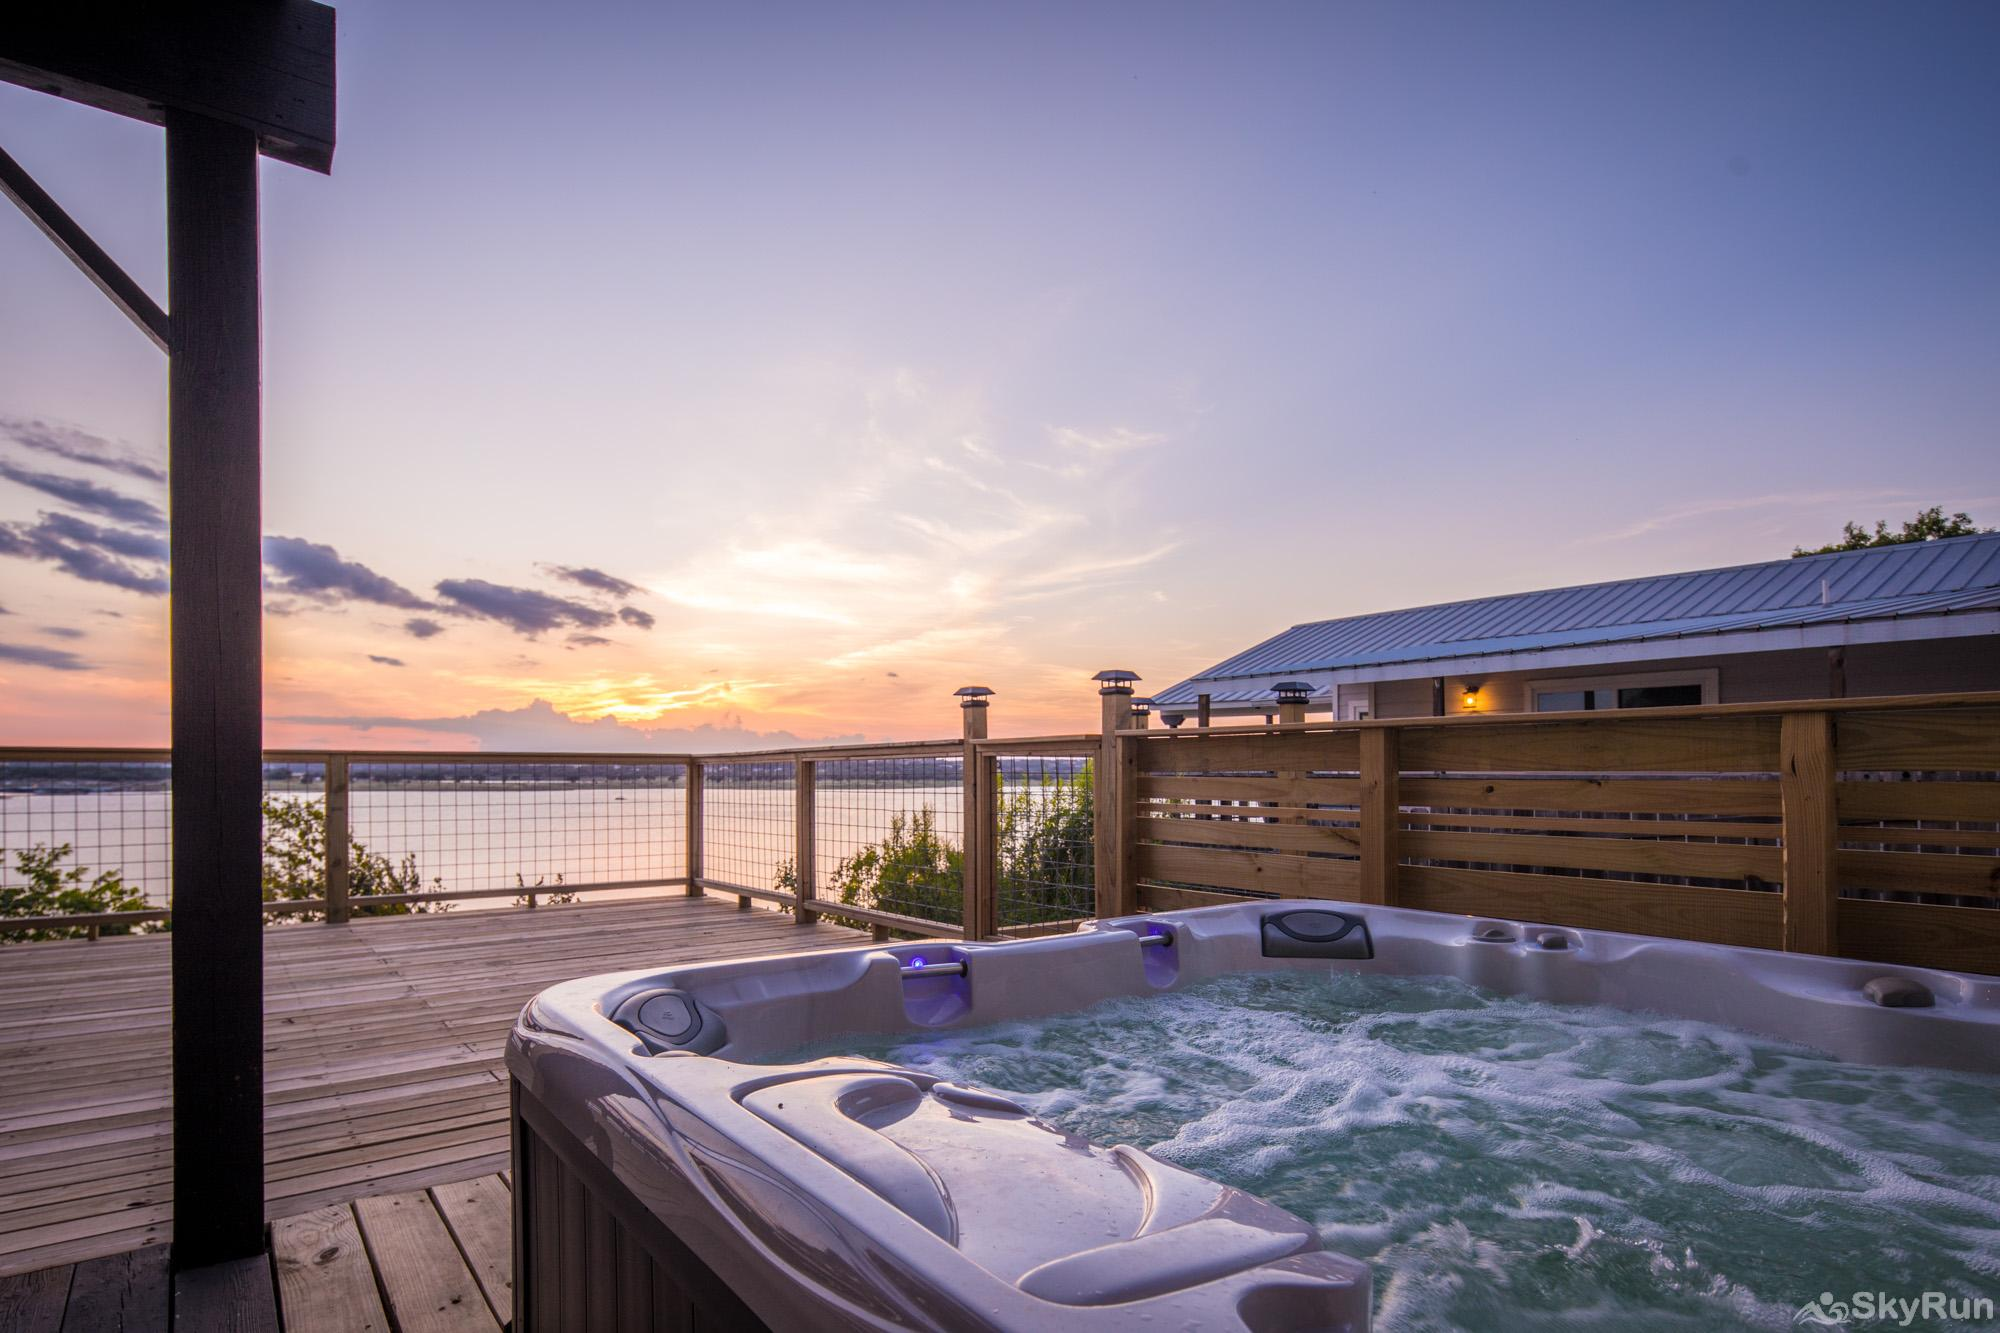 ANCHORS AWAY Enjoy the hot tub and Hill Country sunsets